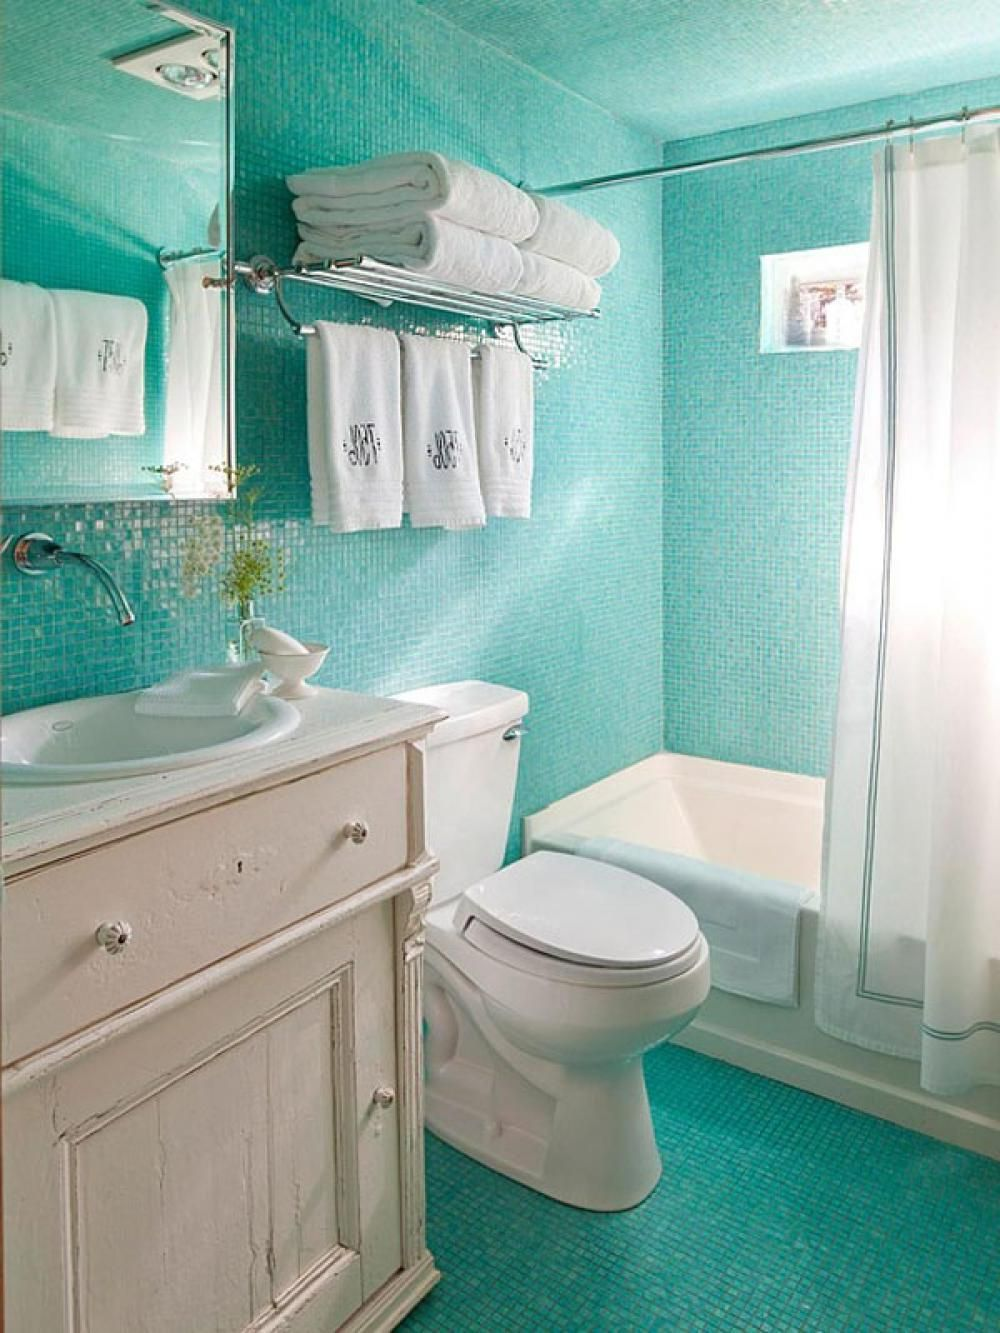 Chic Turquoise Mosaic Tiles Ocean Inspired Bathroom With White - Colorful bath towels for small bathroom ideas